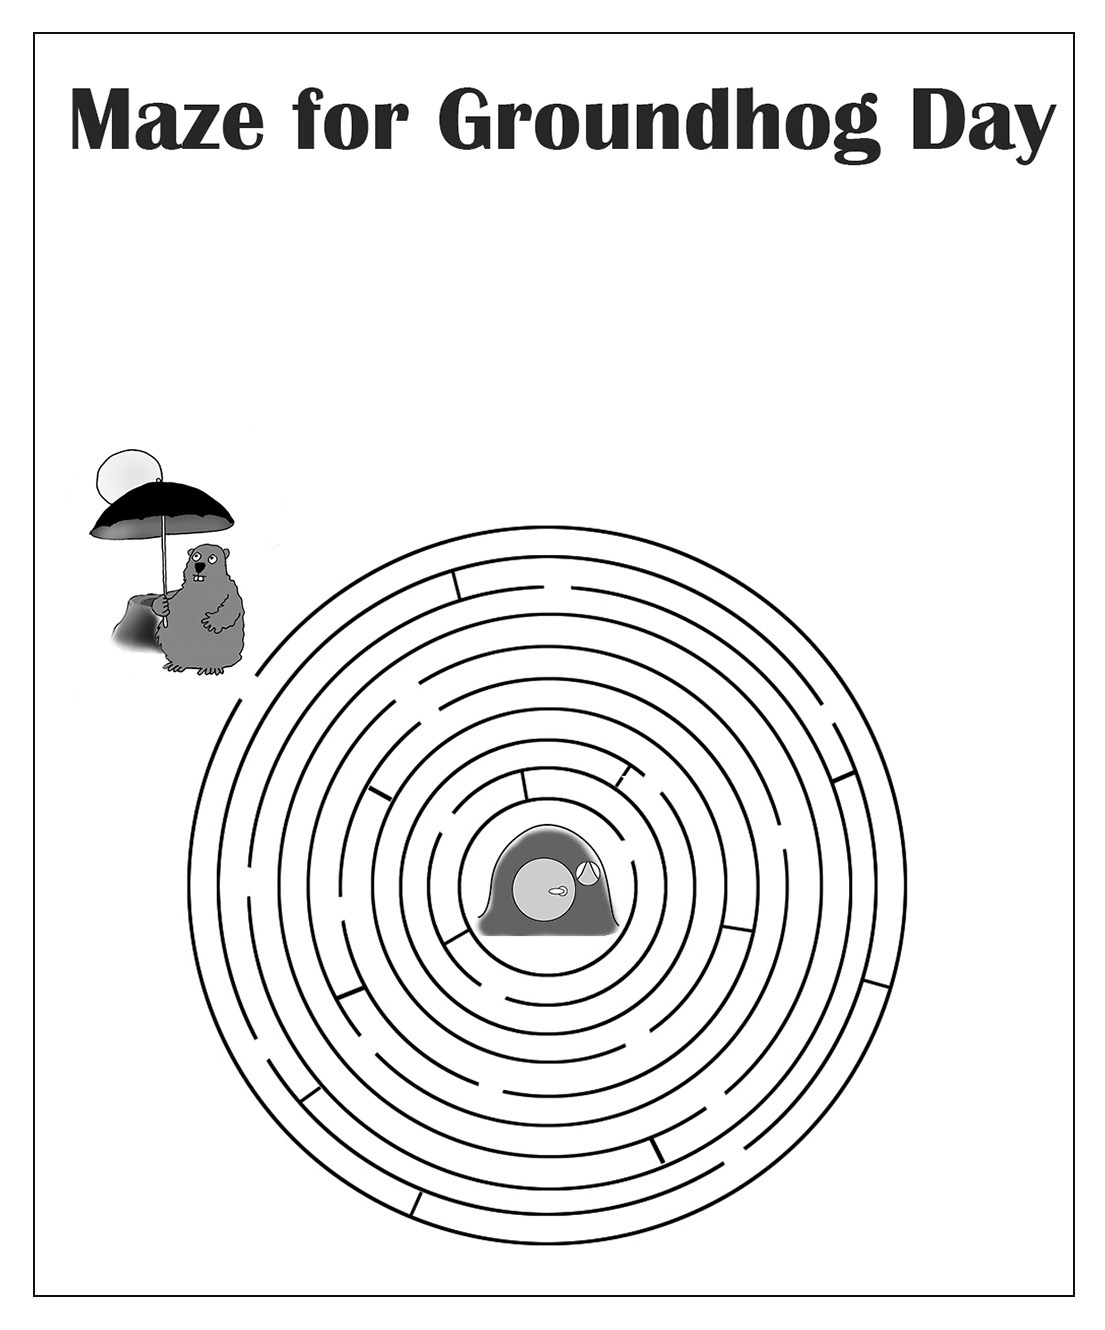 maze for Groundhog Day